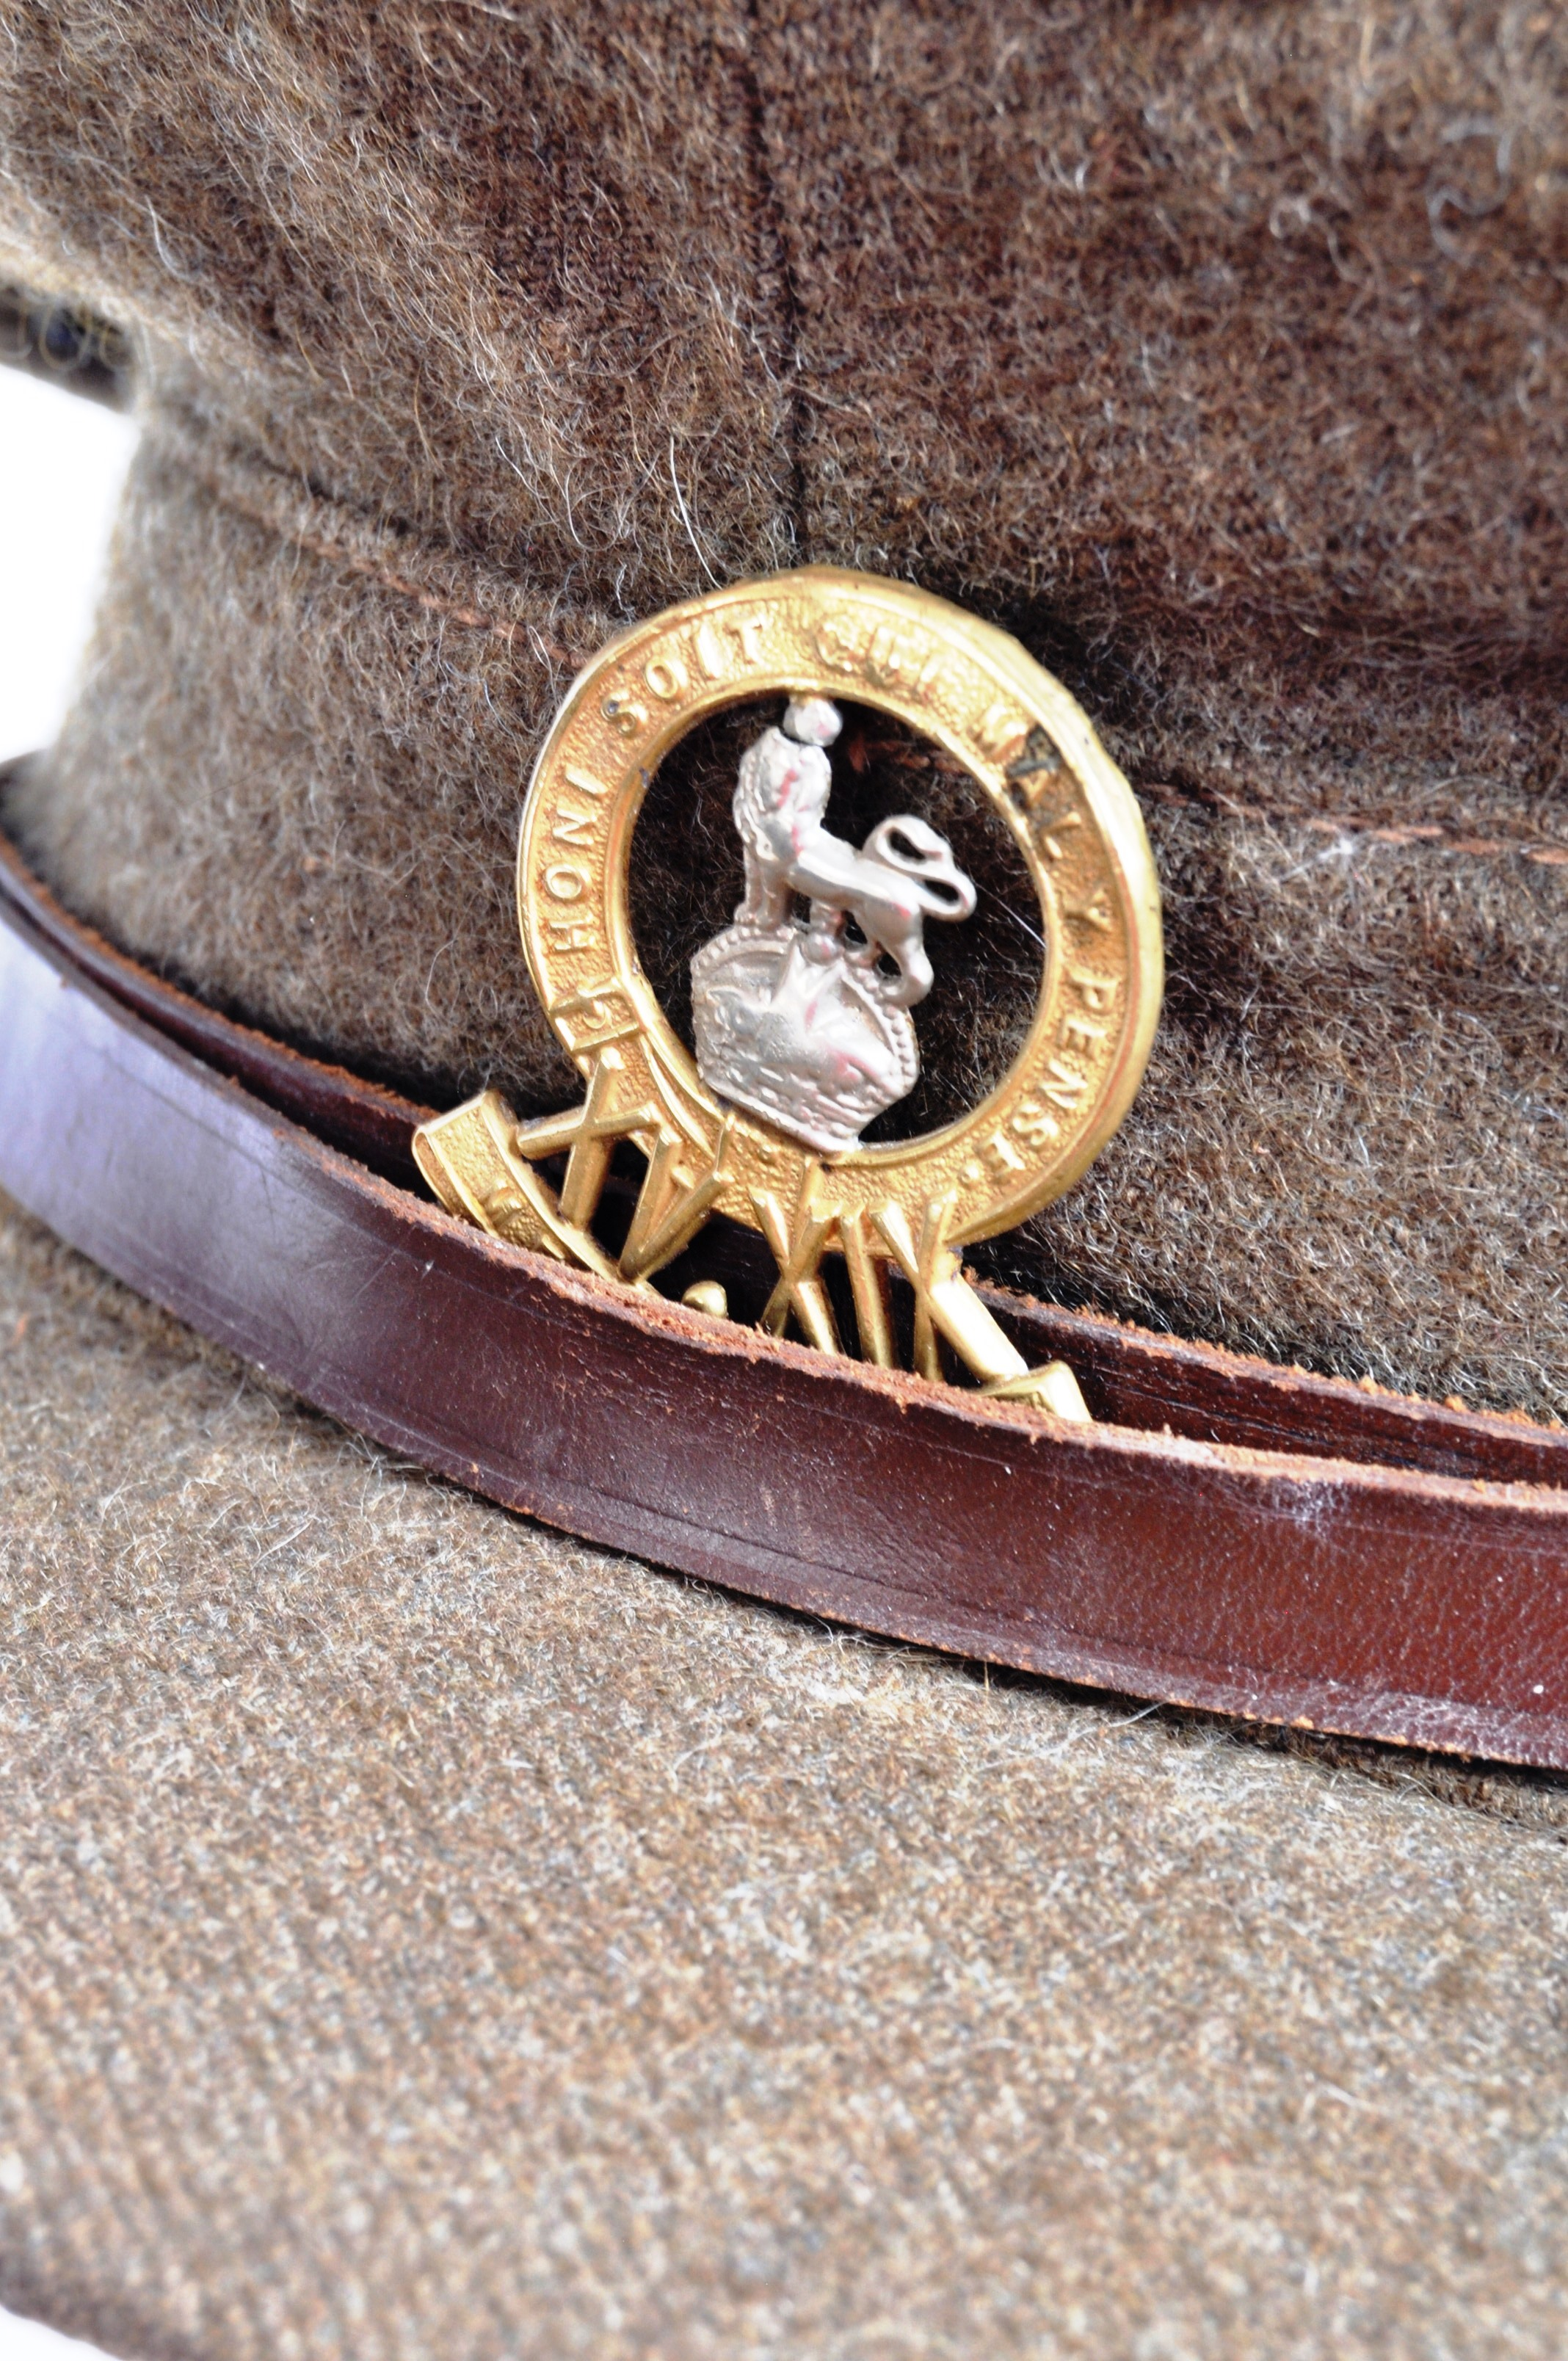 WWI FIRST WORLD WAR PERIOD KING'S ROYAL HUSSARS CAP - Image 2 of 6